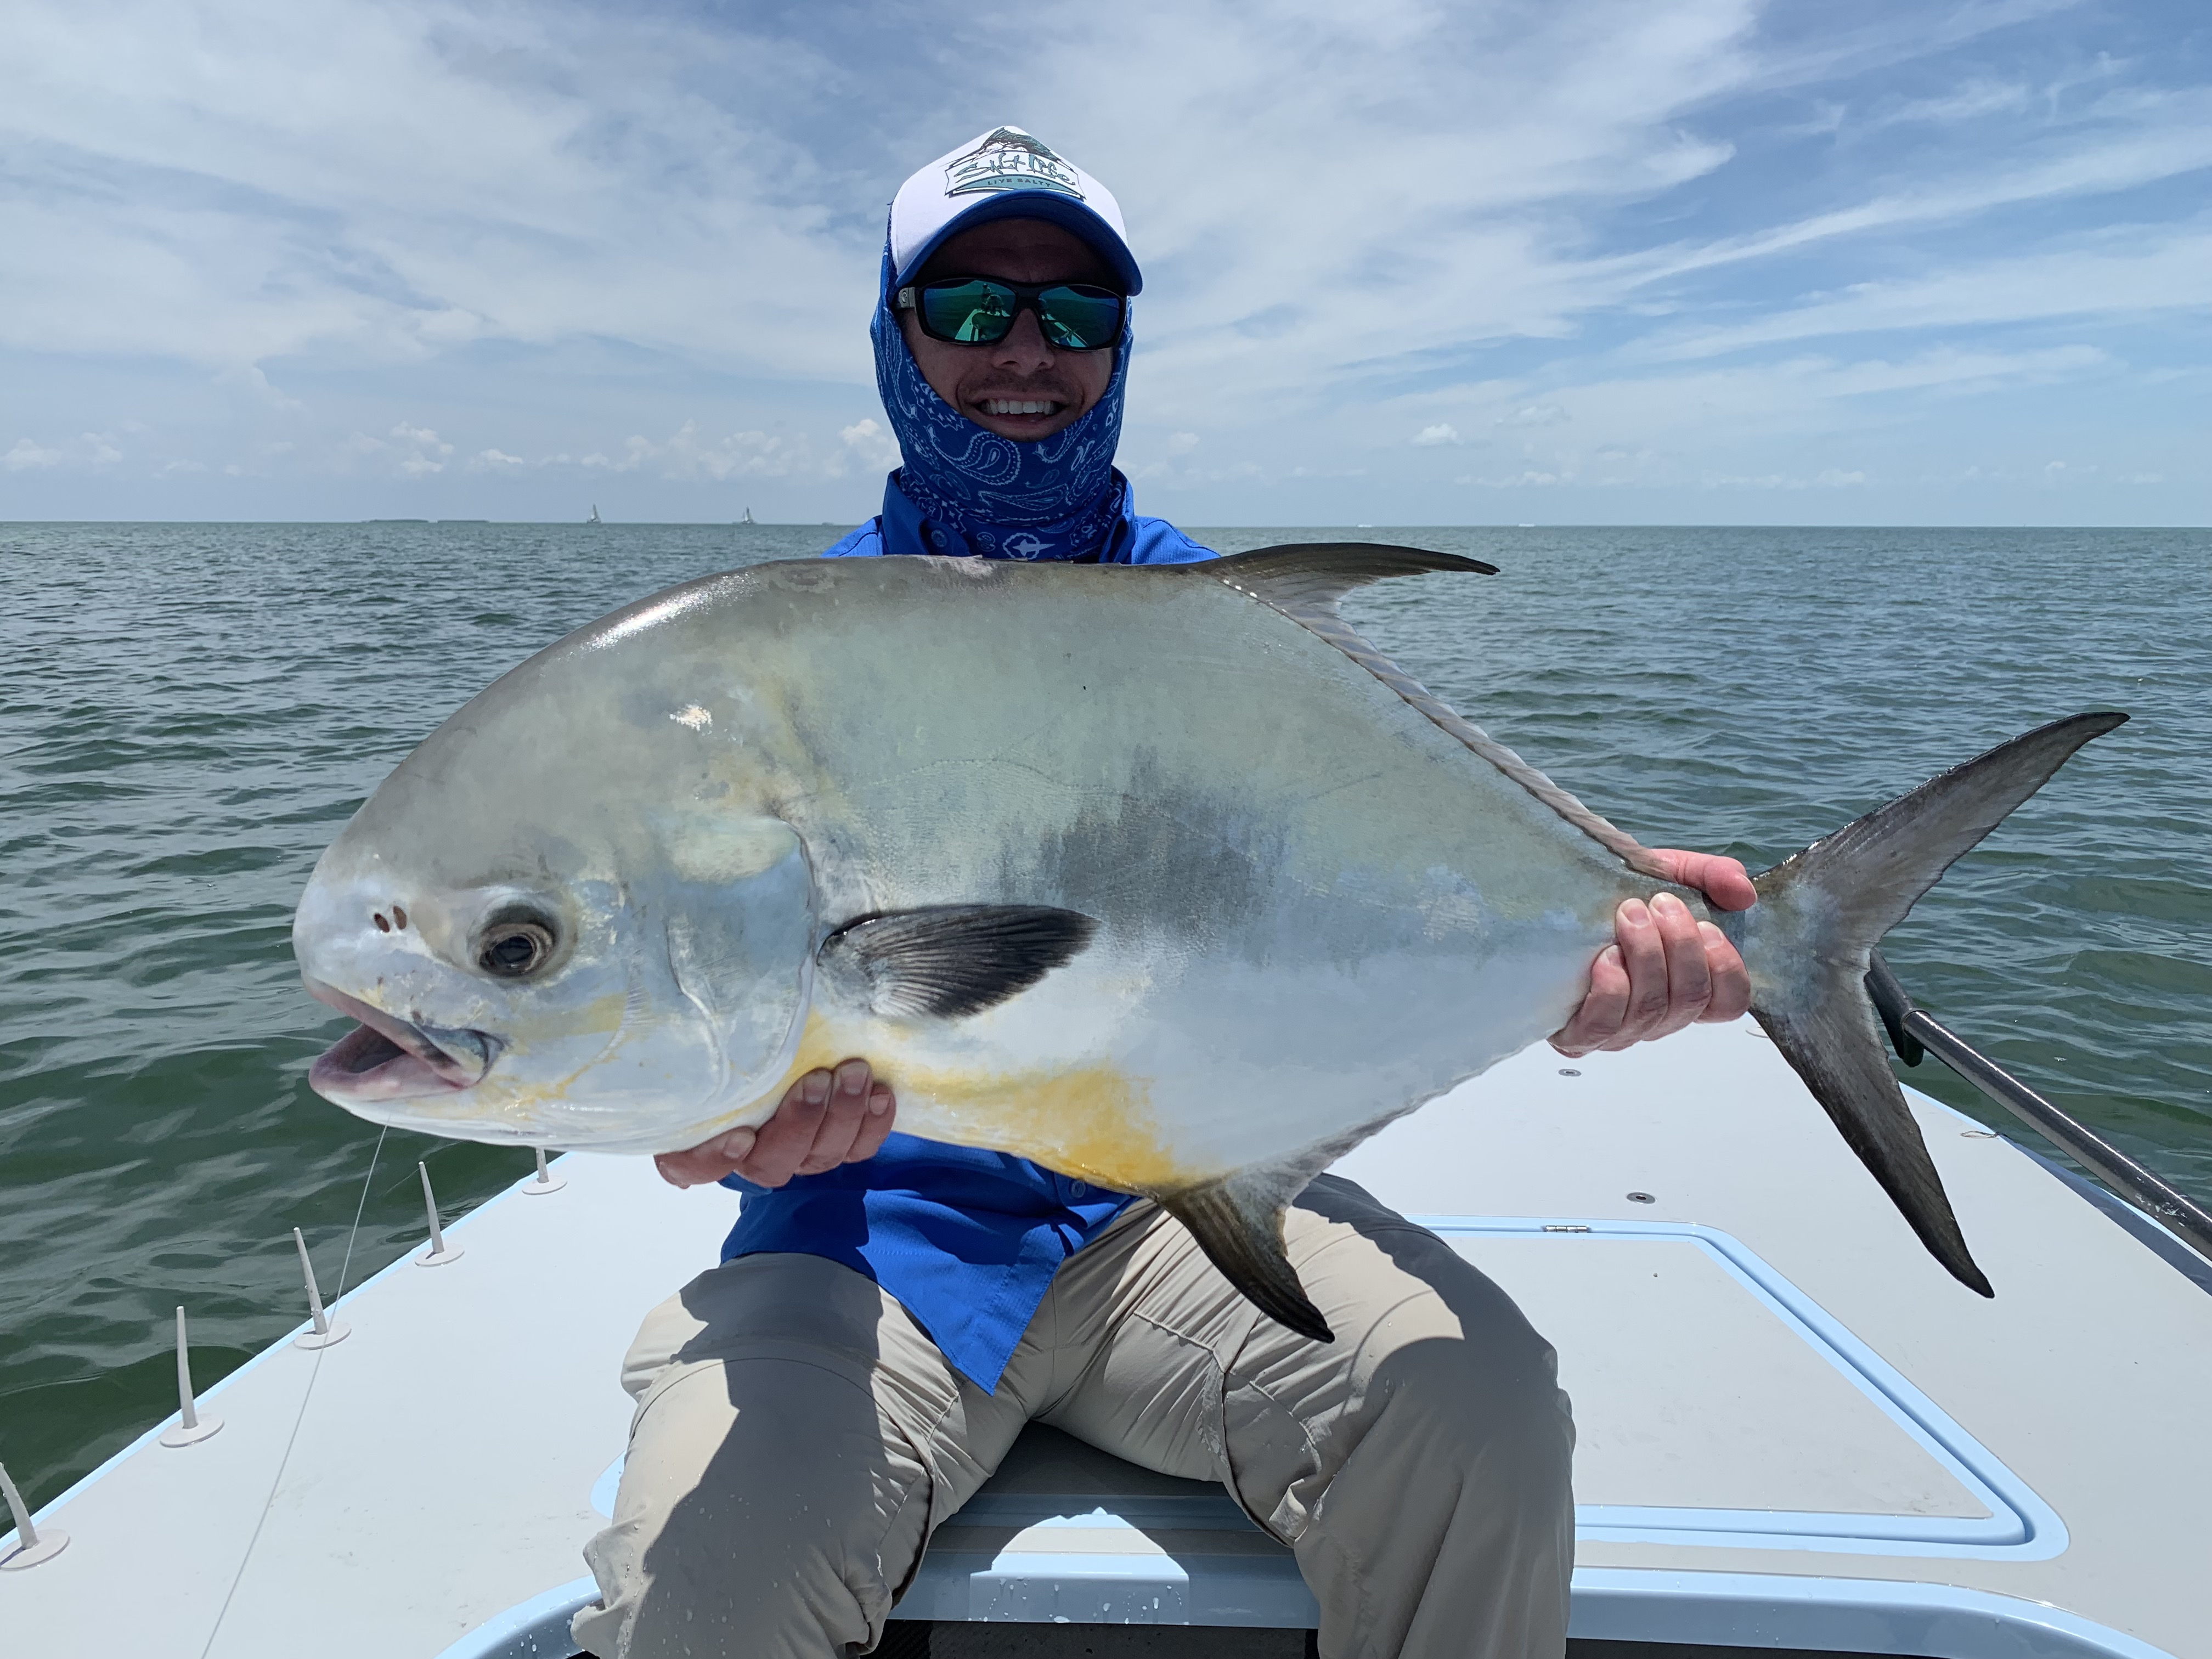 tarpon, bonefish, permit, snook, redfish, trout, snaper, grouper, jacks, cobia, tripletail, dolphin, kingfish, tuna, backcountry, nearshore, offshore, sight fishing, flyfishing, flats fishing, light tackle fishing, bay boat, flats boat, islamorada, key largo, keylargo, floridakeys, Florida Keys, fishing, , fishing charter, saltwaterfishing,